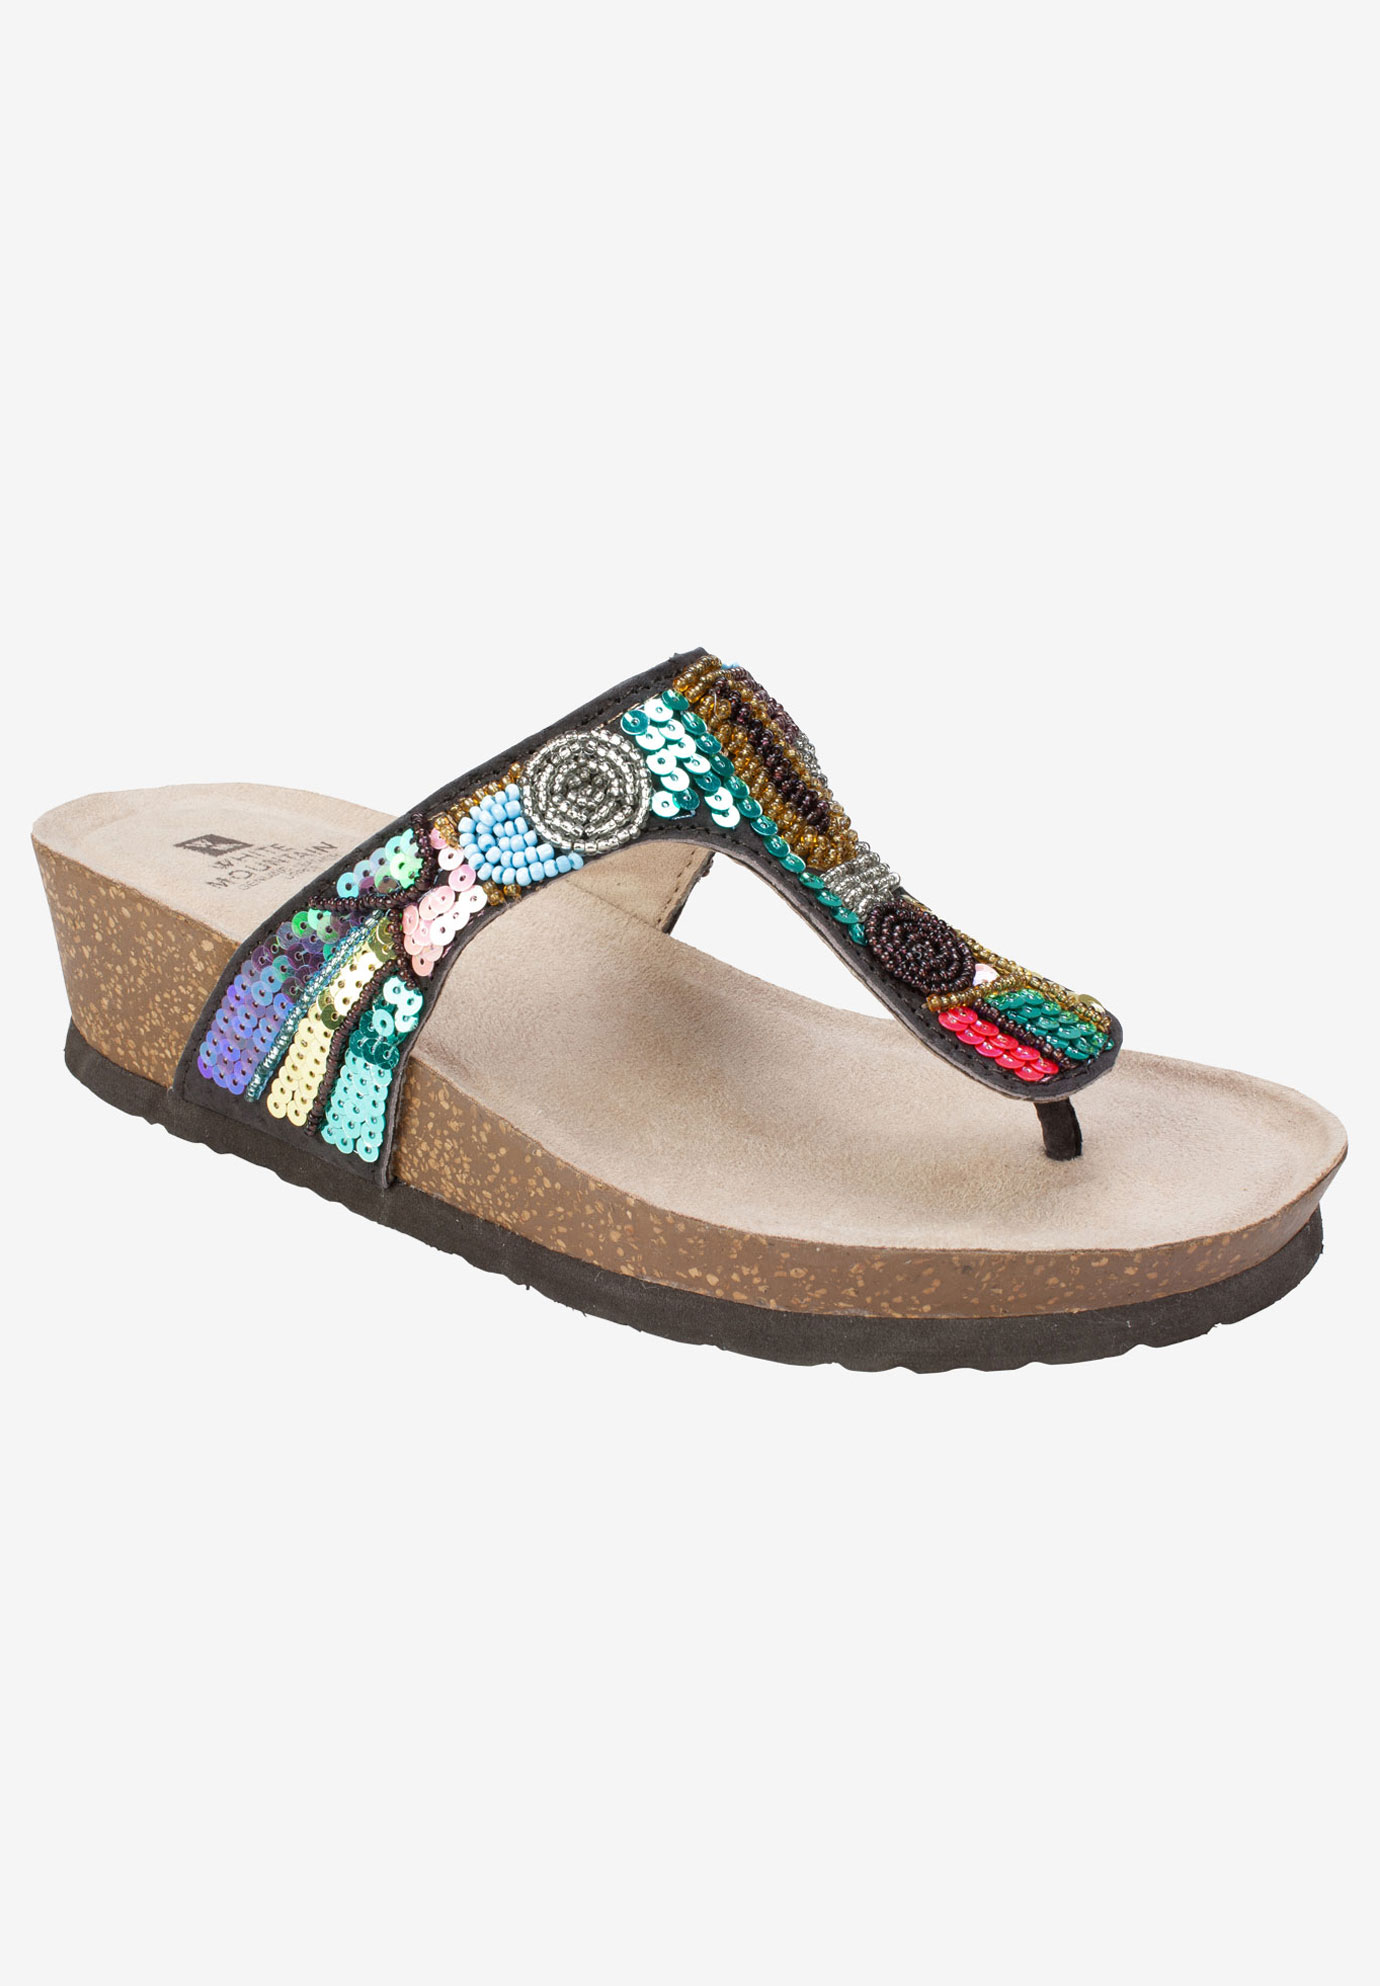 Cordoba Sandal by White Mountain,